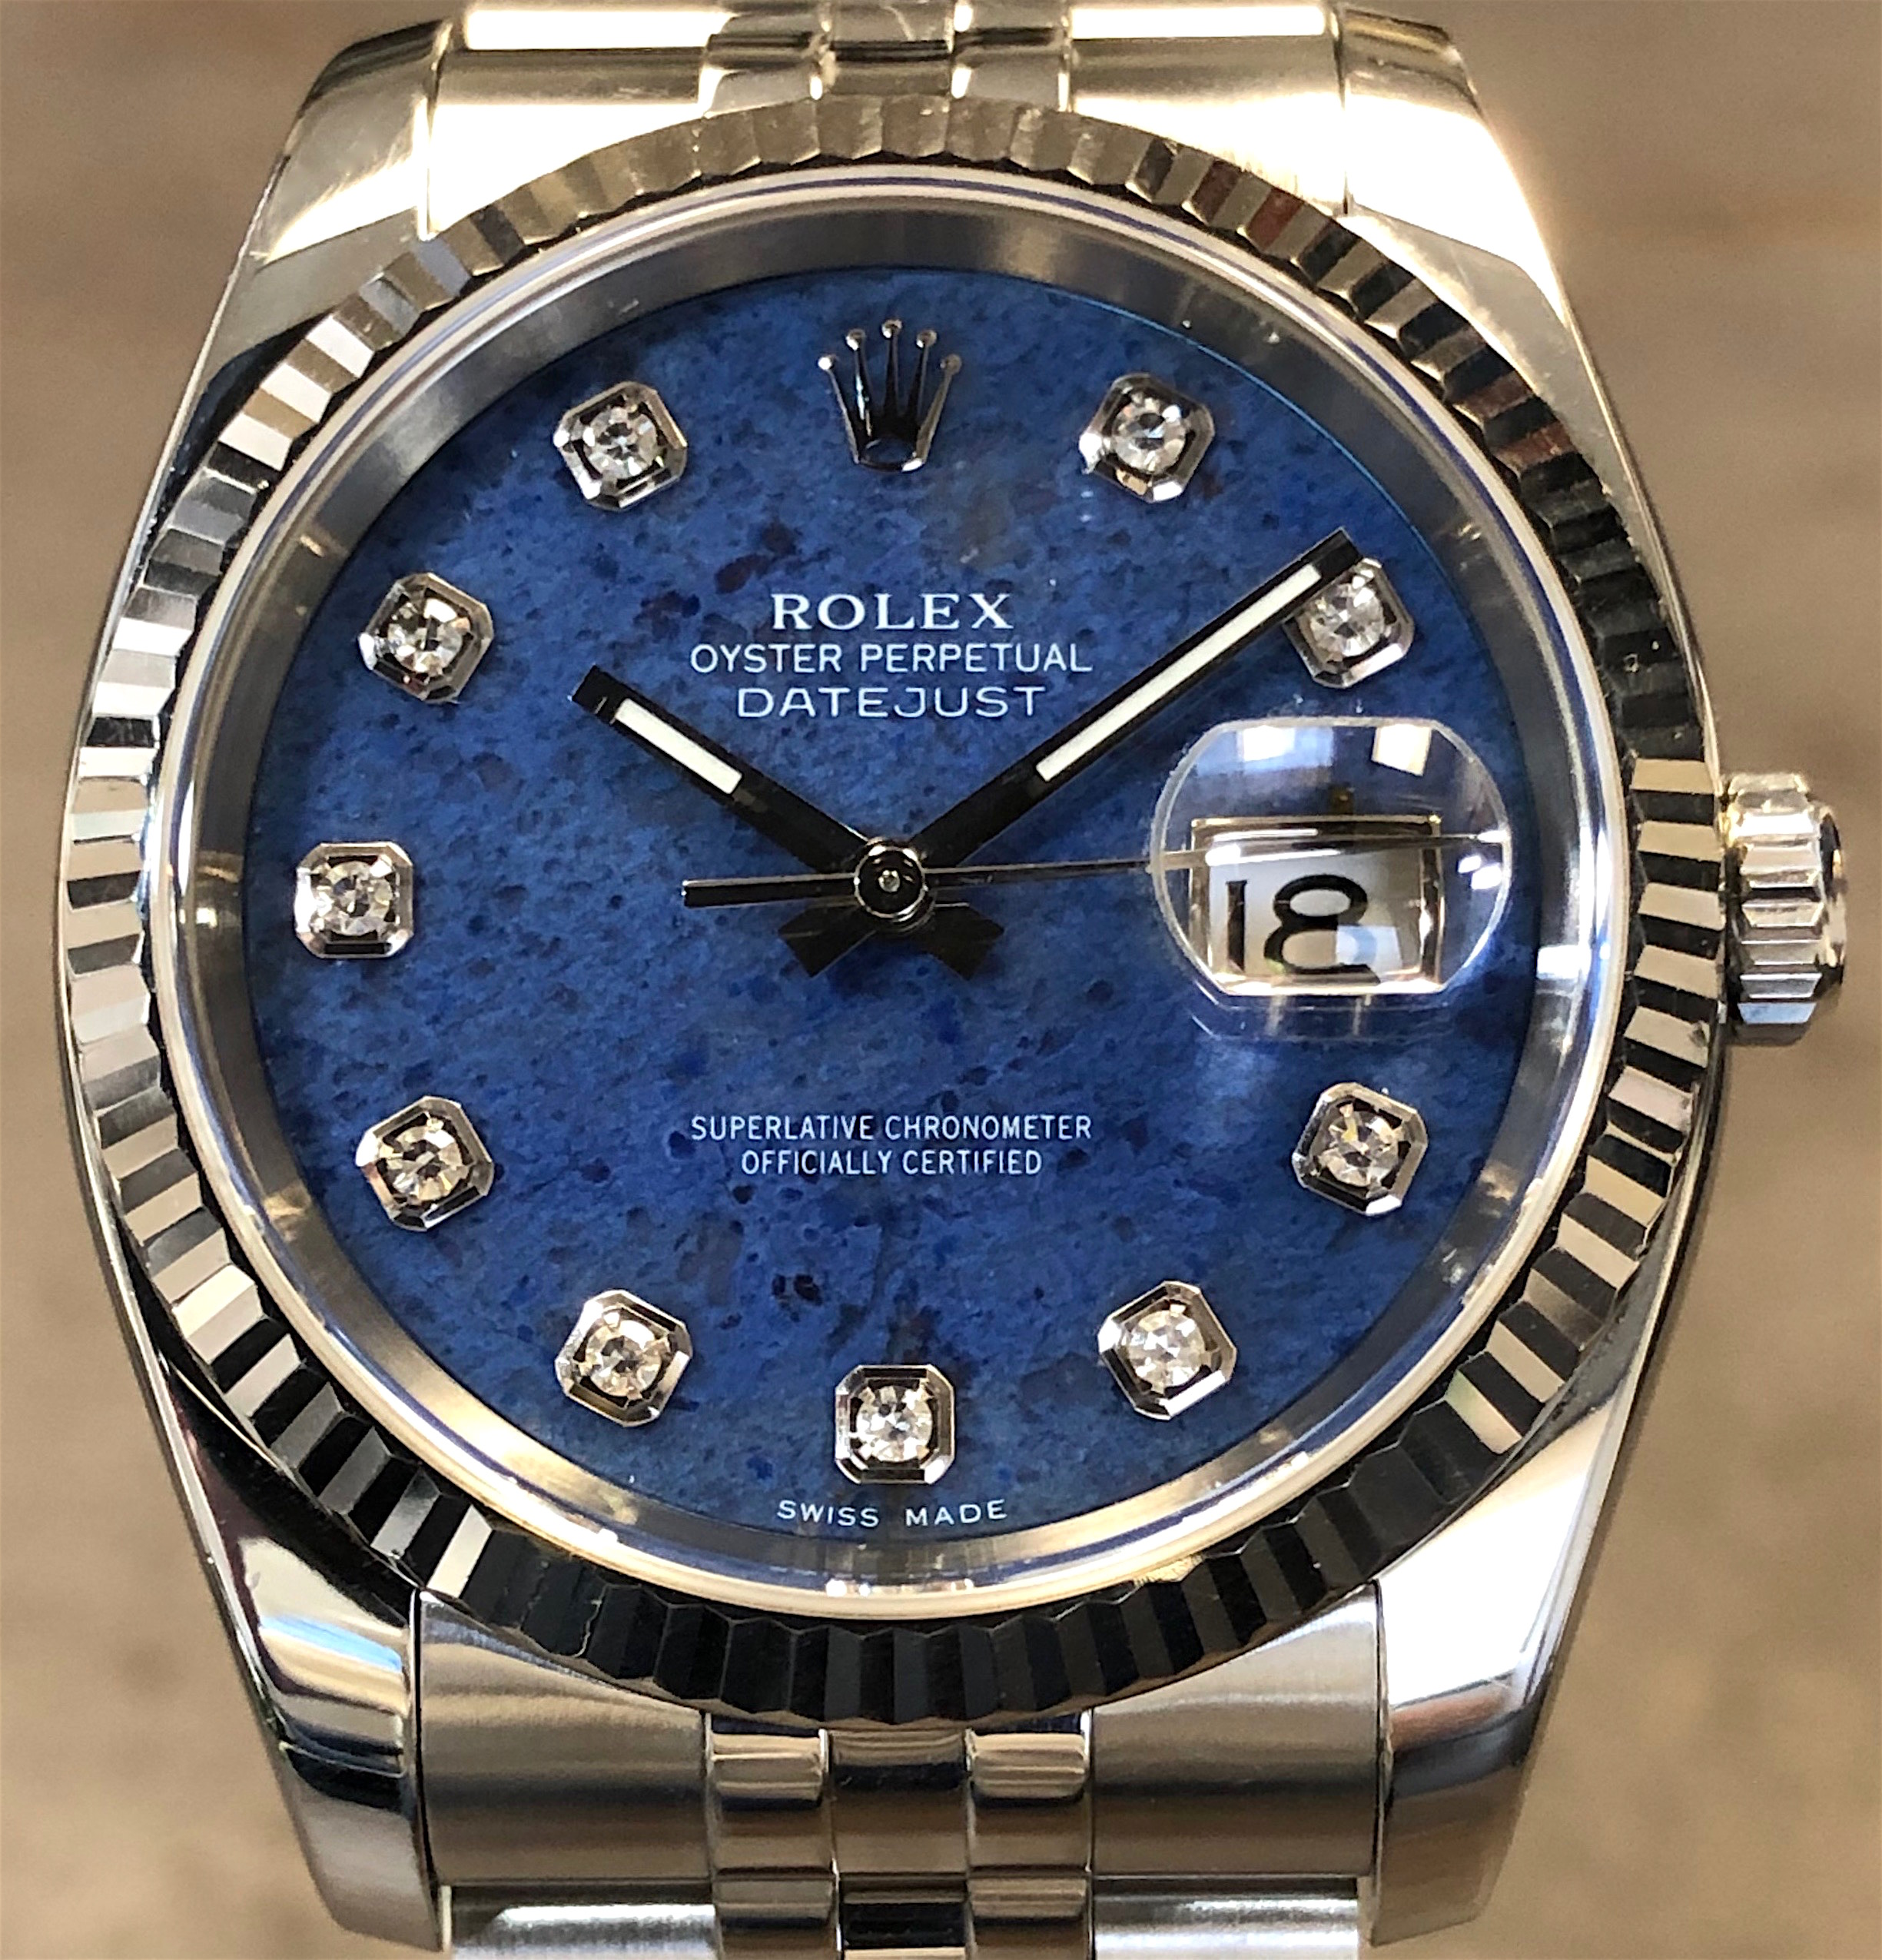 303aff39dea Rolex Datejust 36MM 116234 18K White Gold/Steel Factory Sodalite Diamond  Dial w/ Papers